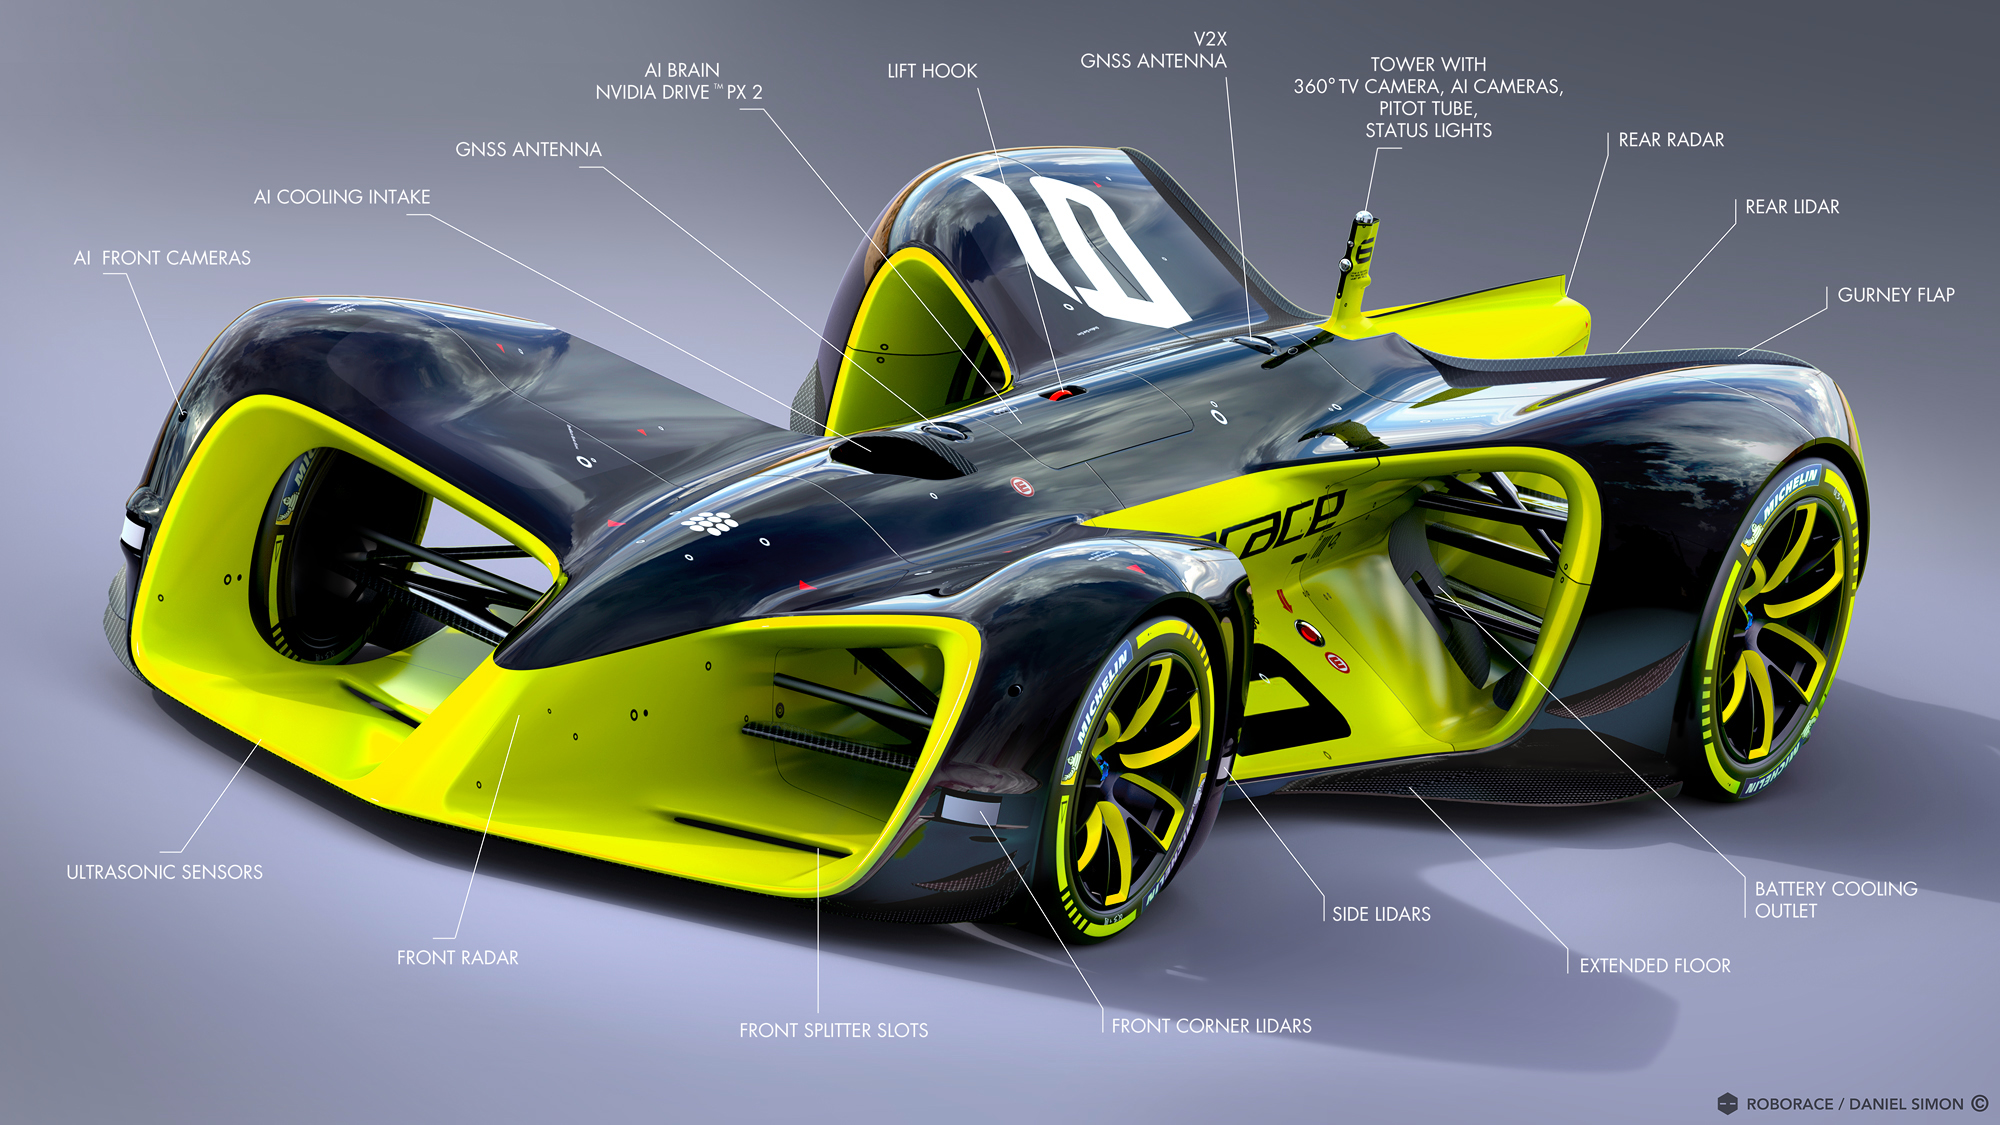 Robocar. Image by Chief Design Officer Daniel Simon / Roborace Ltd.